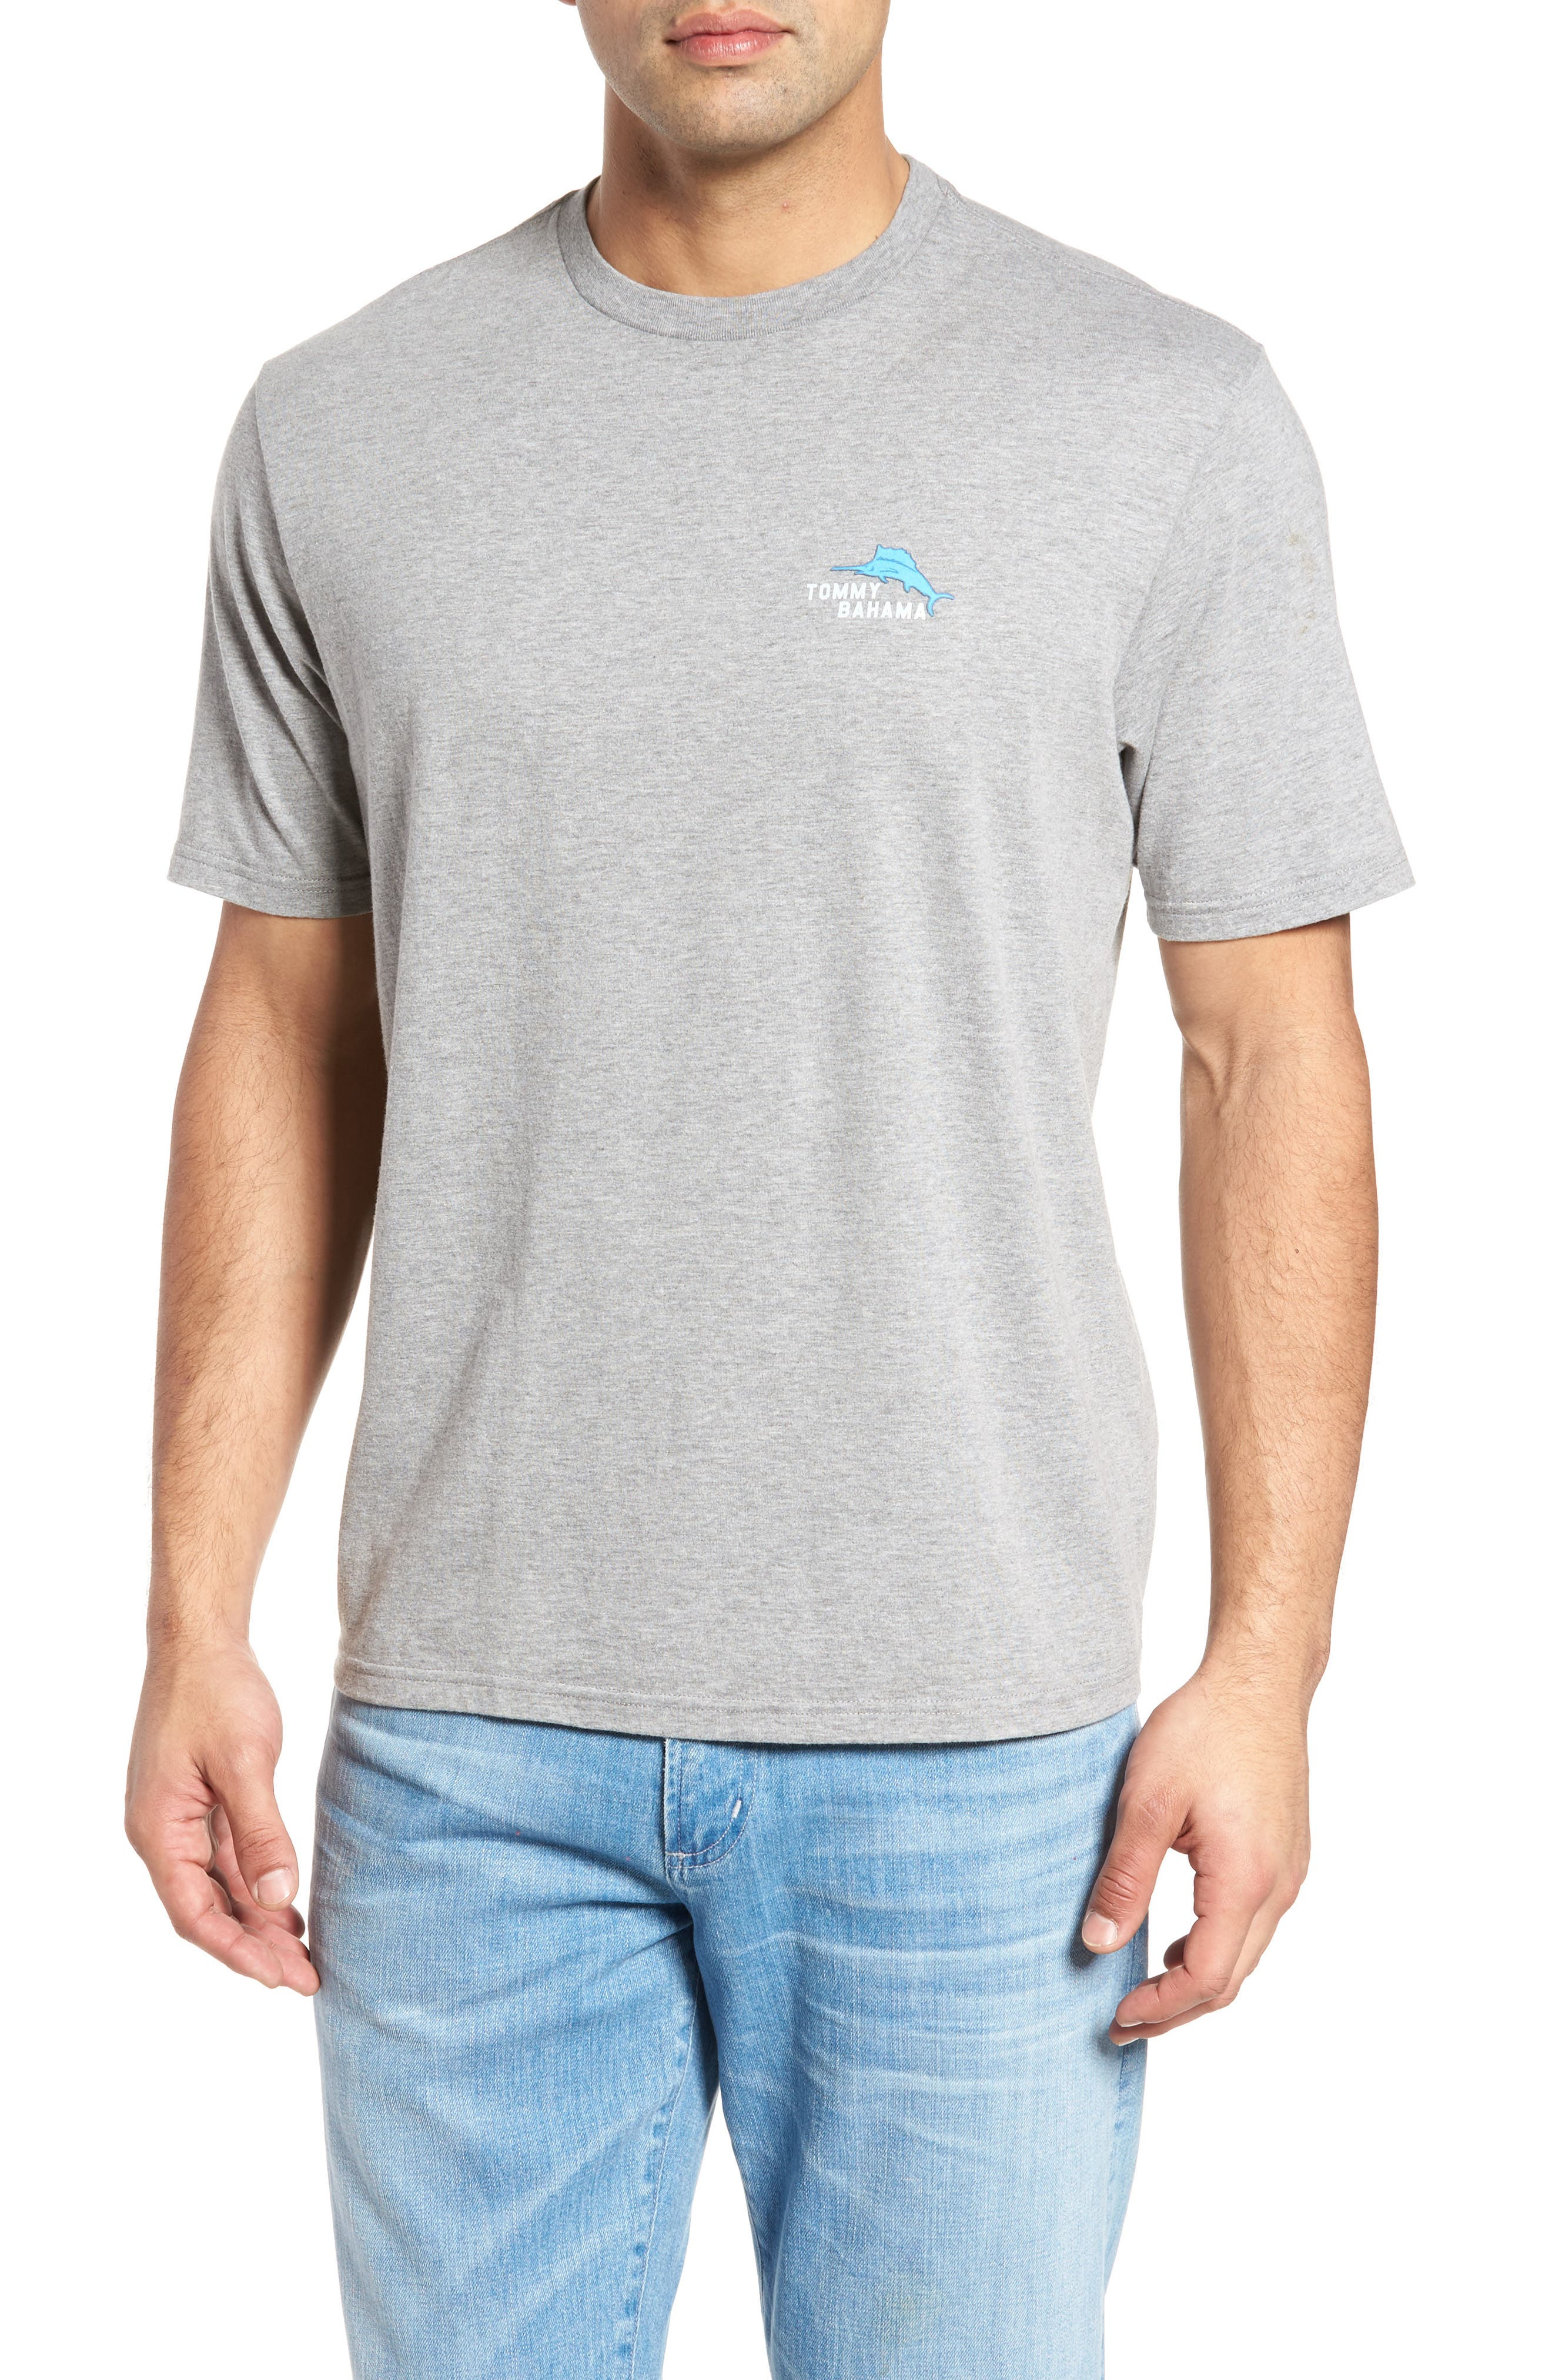 Yer Out T-Shirt,                         Main,                         color, Grey Heather